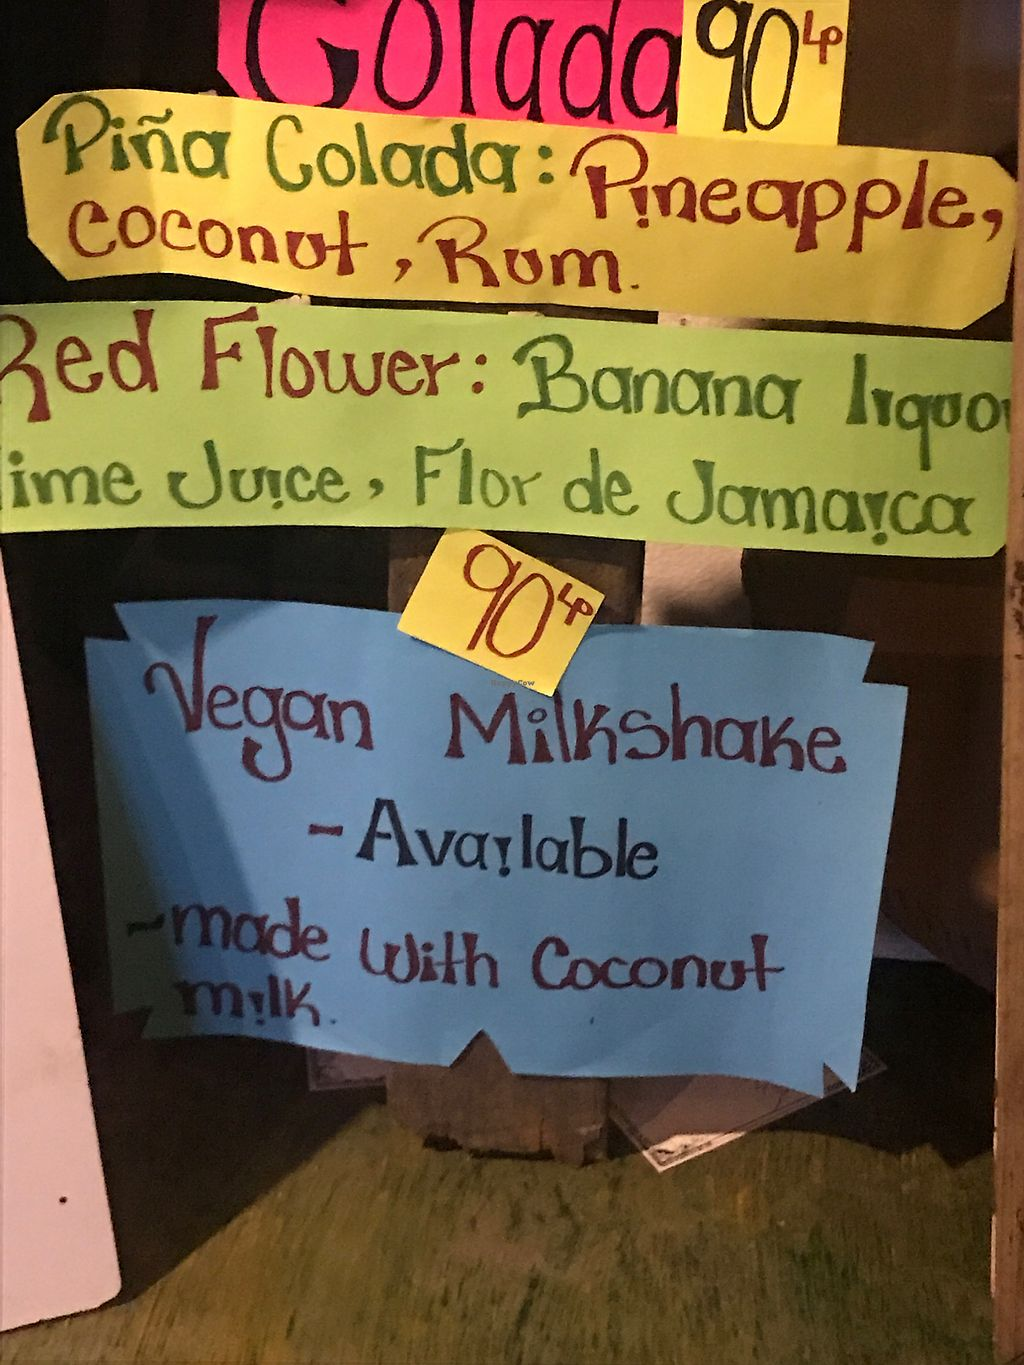 """Photo of B-Leaf Reataurant at The Jade Sea Horse  by <a href=""""/members/profile/IndreArbataityte"""">IndreArbataityte</a> <br/>Vegan milkshakes <br/> March 31, 2018  - <a href='/contact/abuse/image/46062/379105'>Report</a>"""